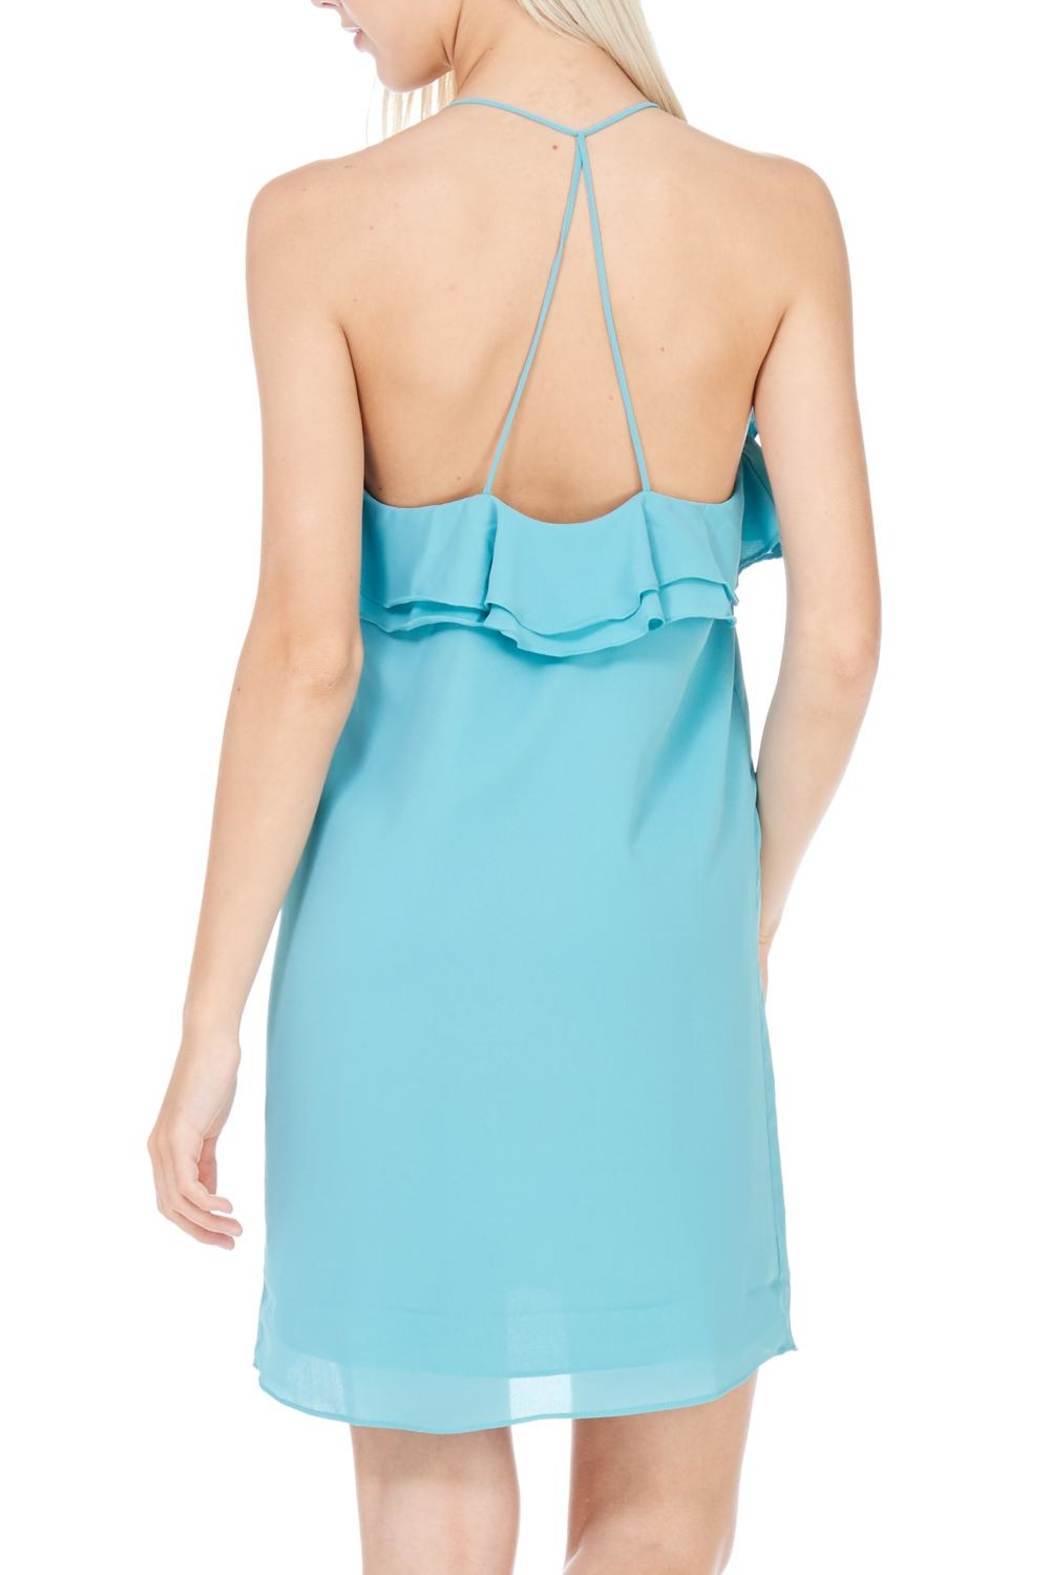 Everly Racerback Lined Dress - Back Cropped Image